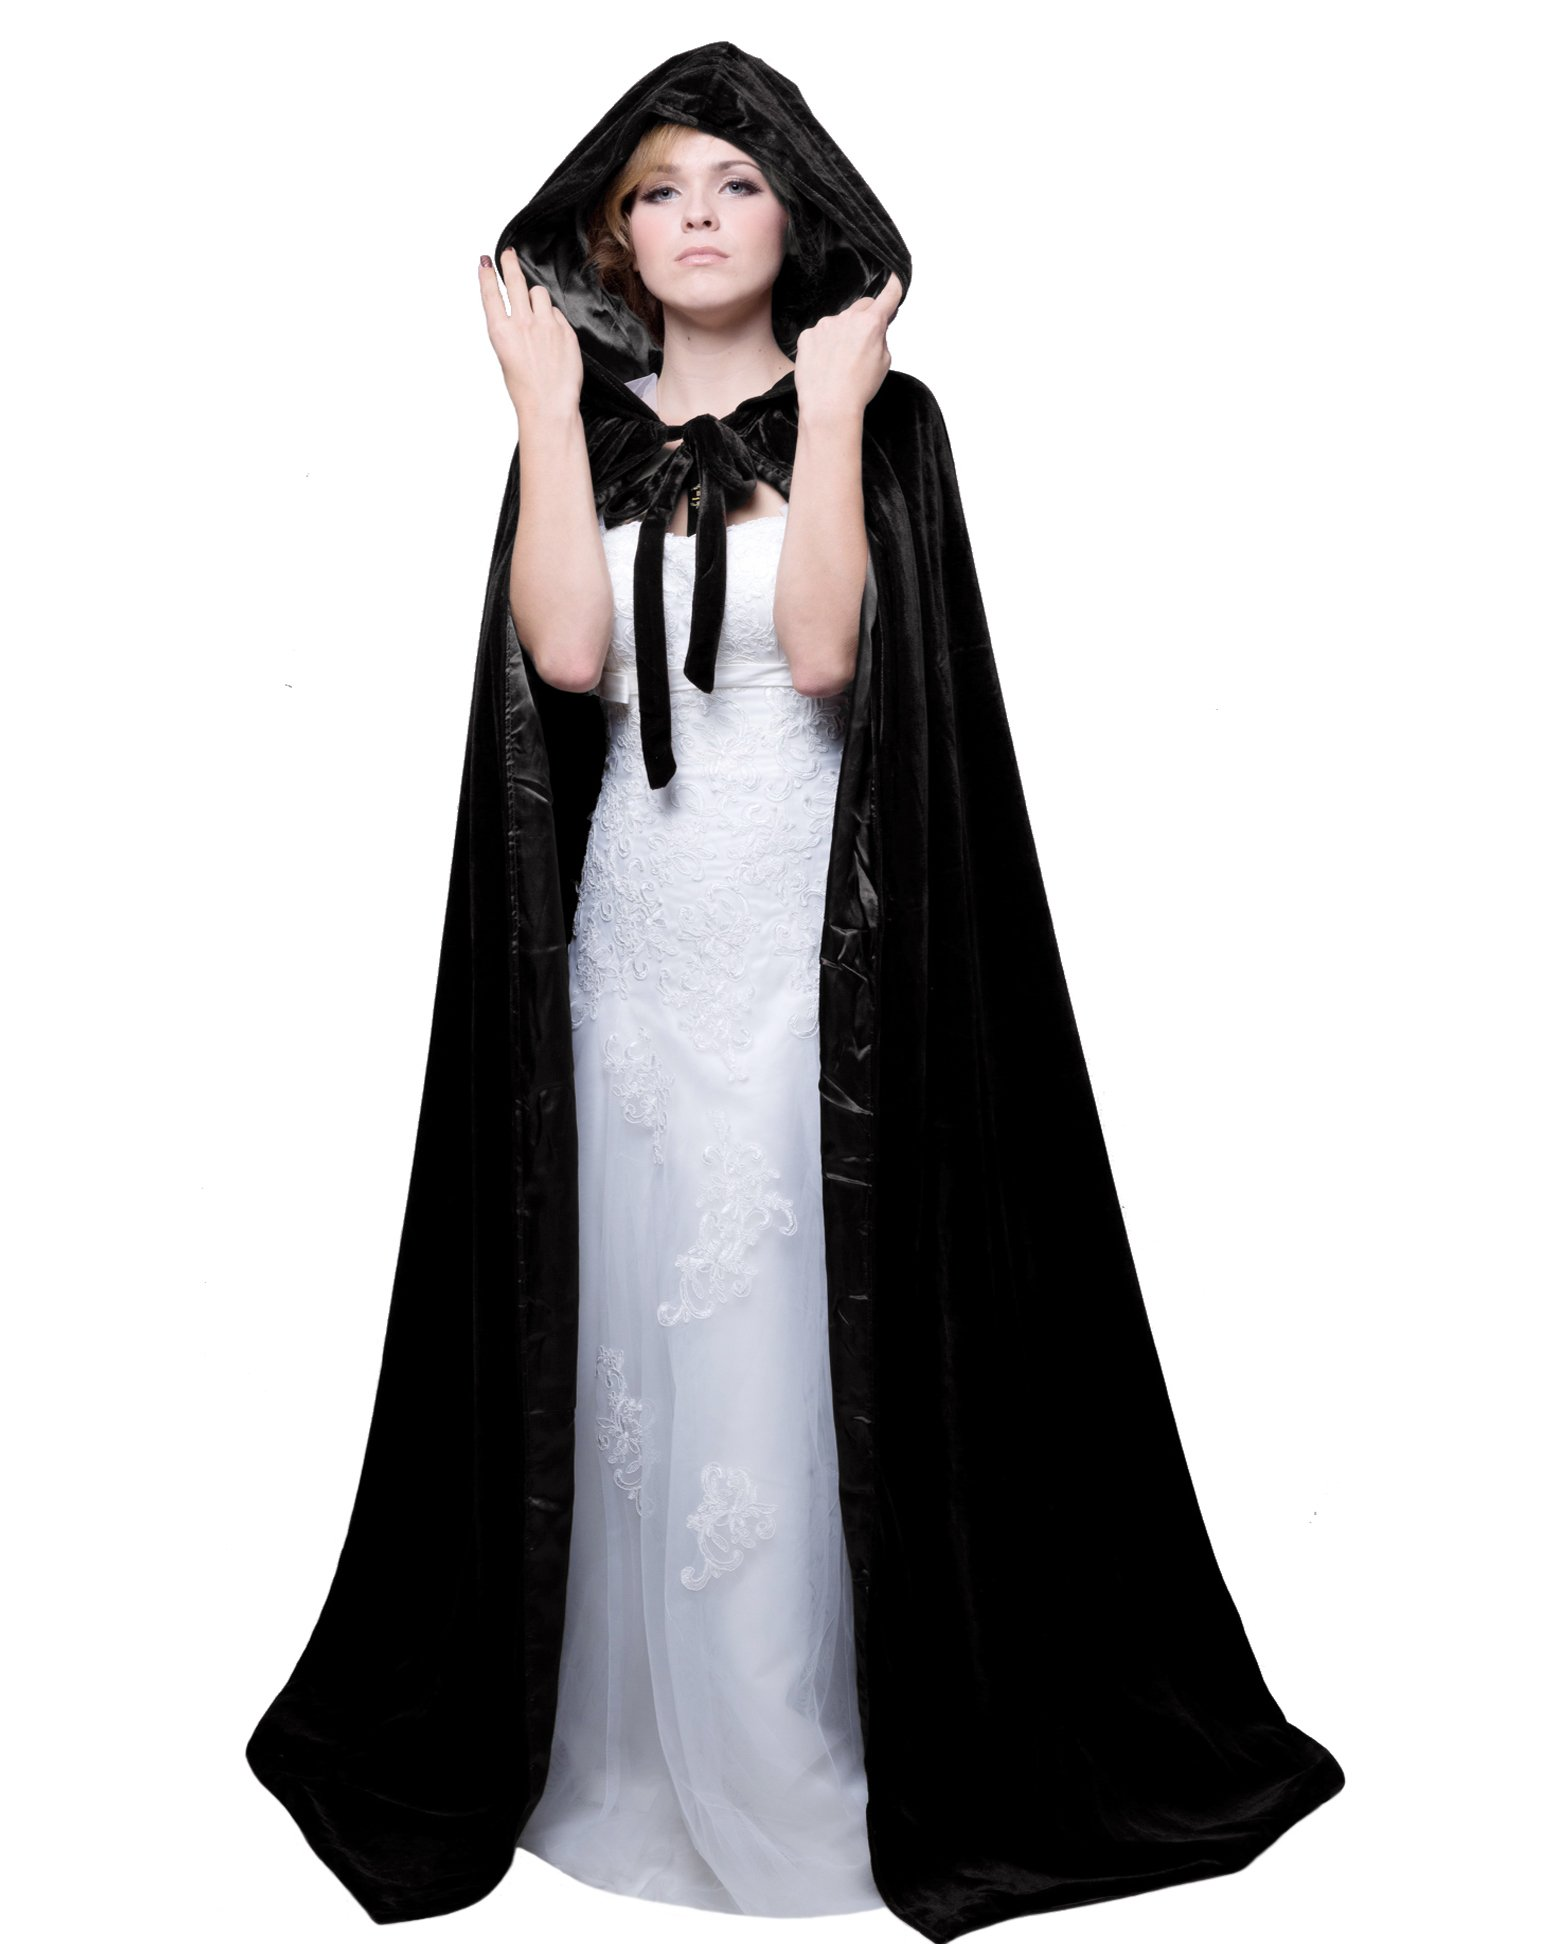 HSDREAM Unisex Hooded Wedding Cape Cloak lined with Satin For Halloween Costume (Black, B)